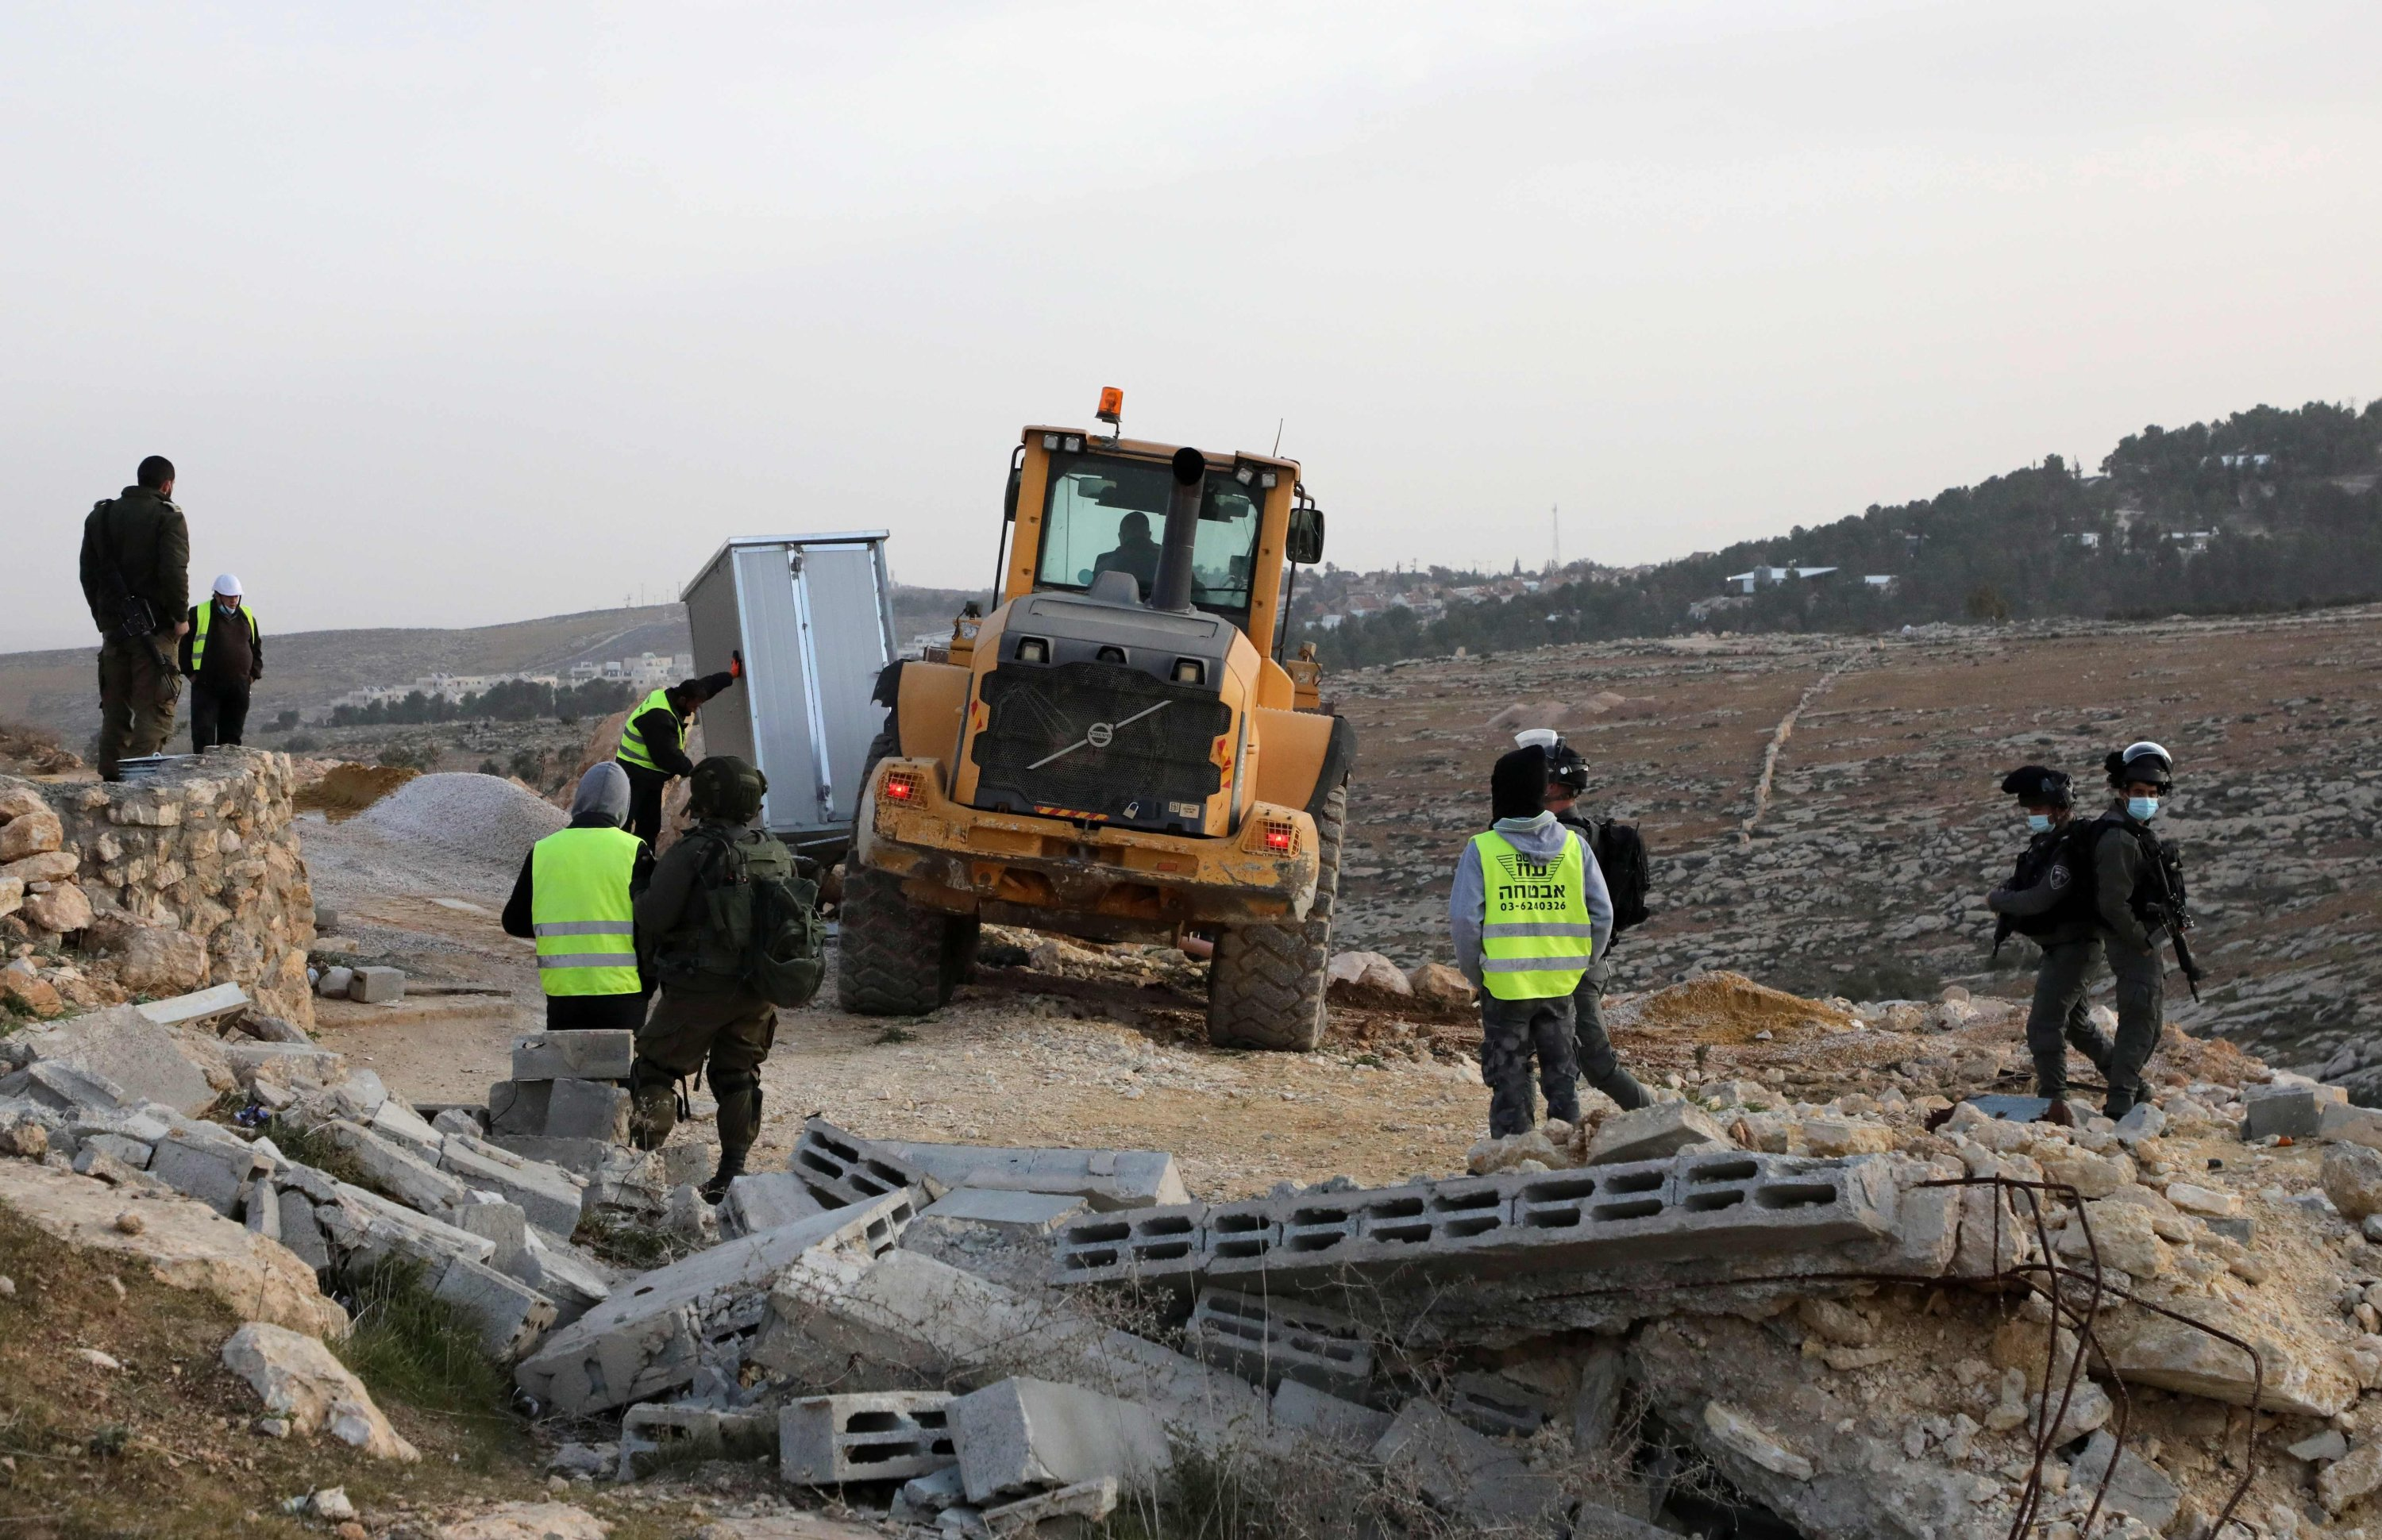 Palestine slams Israel over mosque demolition in West Bank